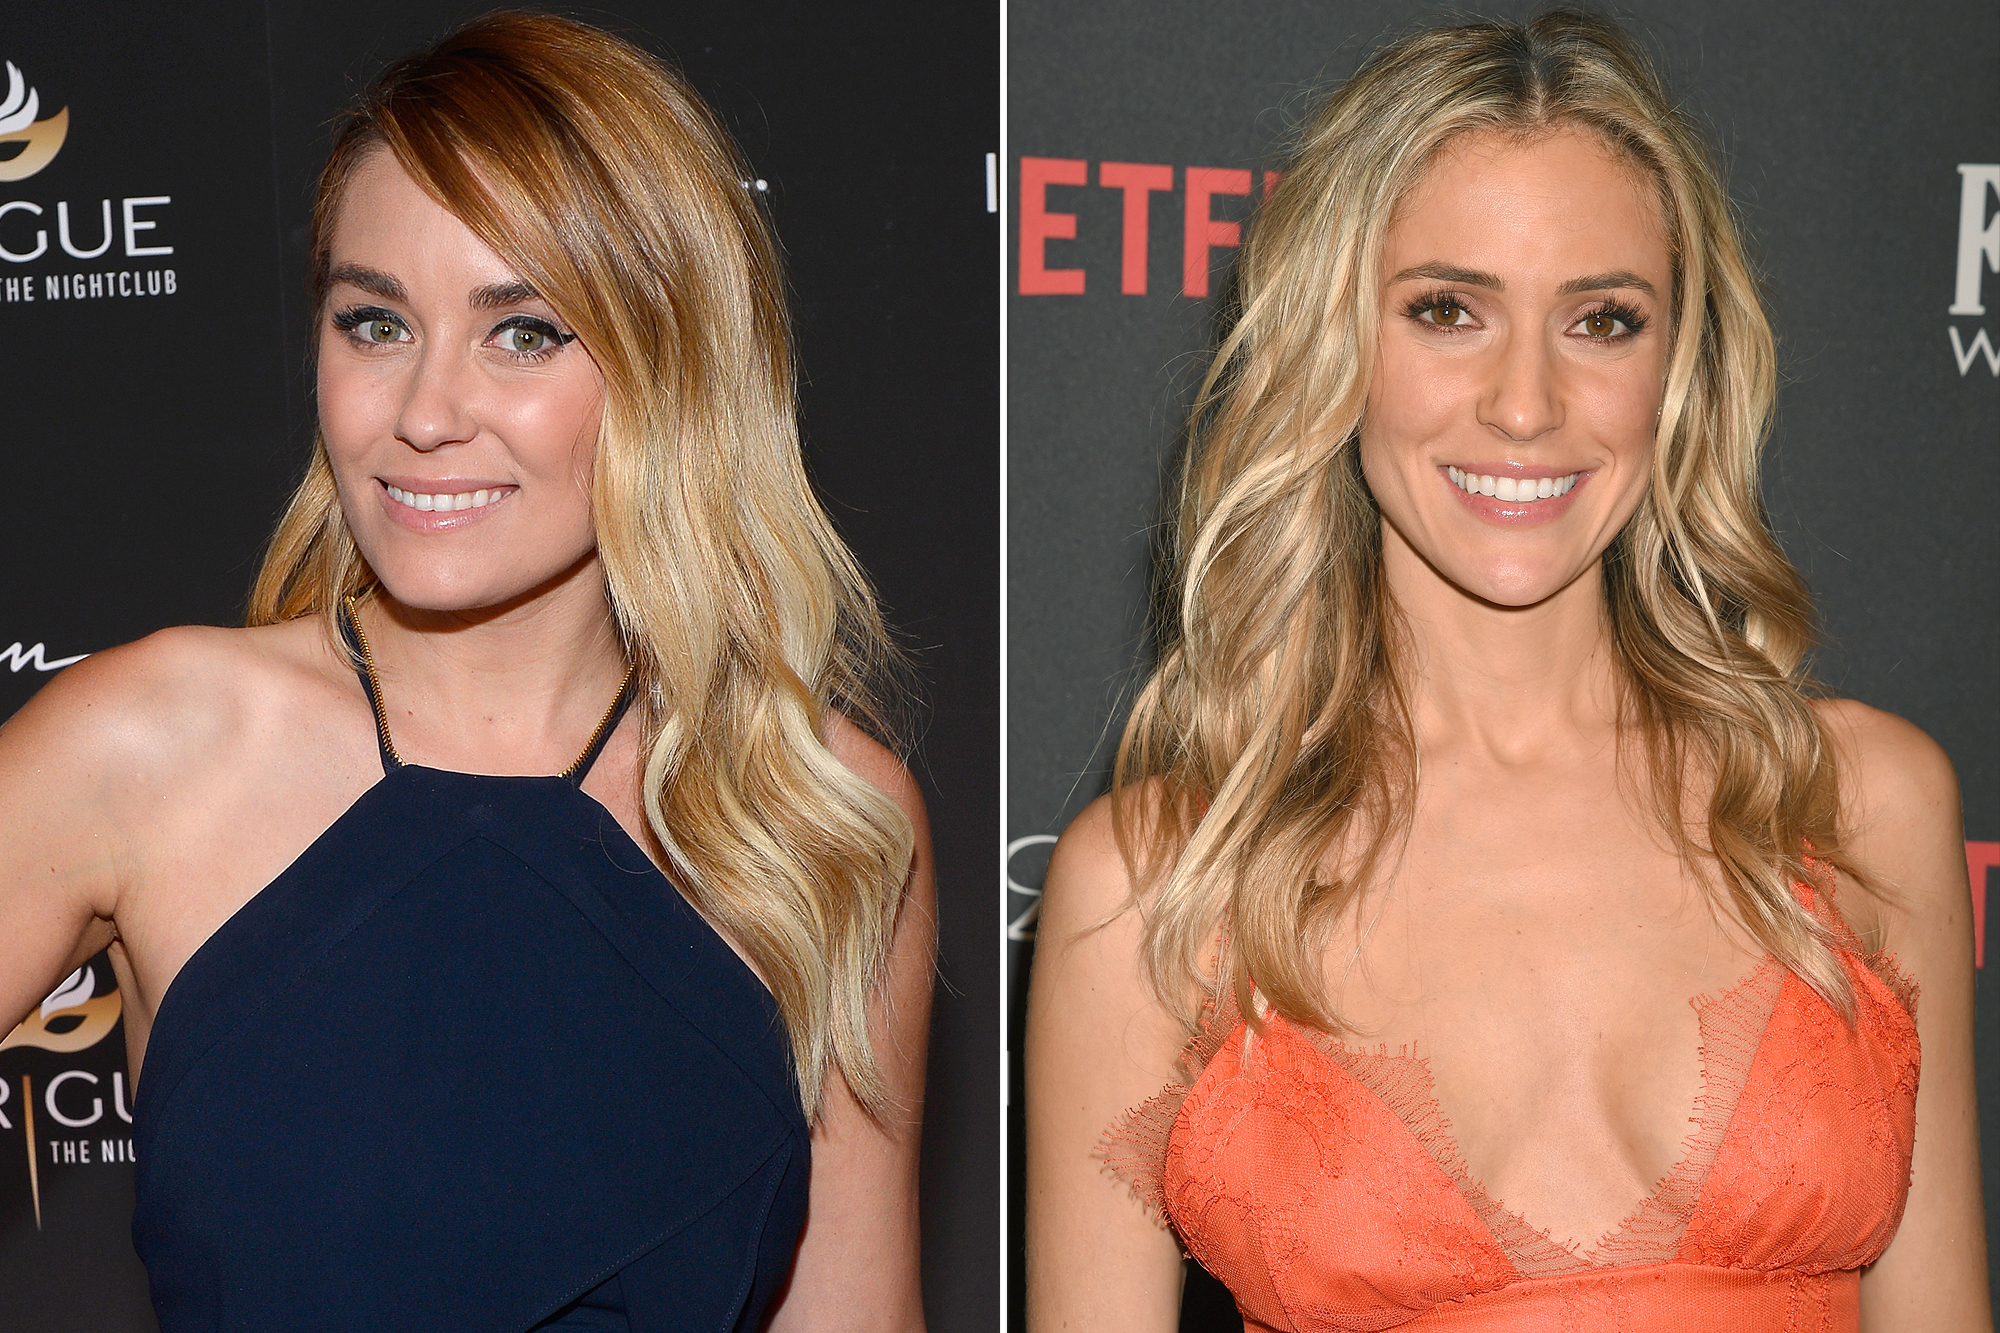 Kristin Cavallari to Expecting The Hills Cast: 'Go Off of Your Gut'